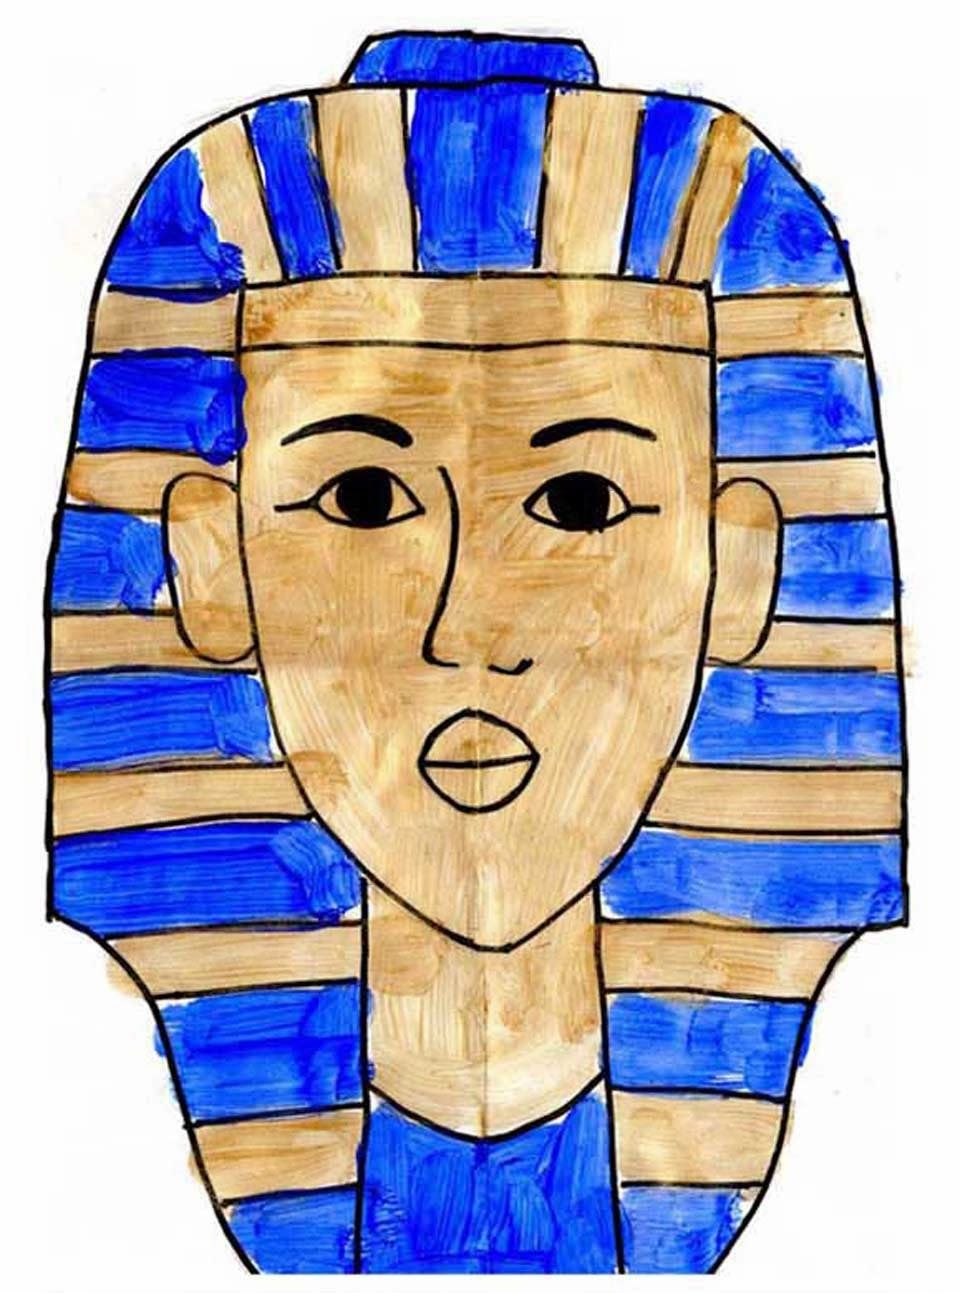 960x1293 How To Draw King Tut Apfk Painting Art Drawings For Kids